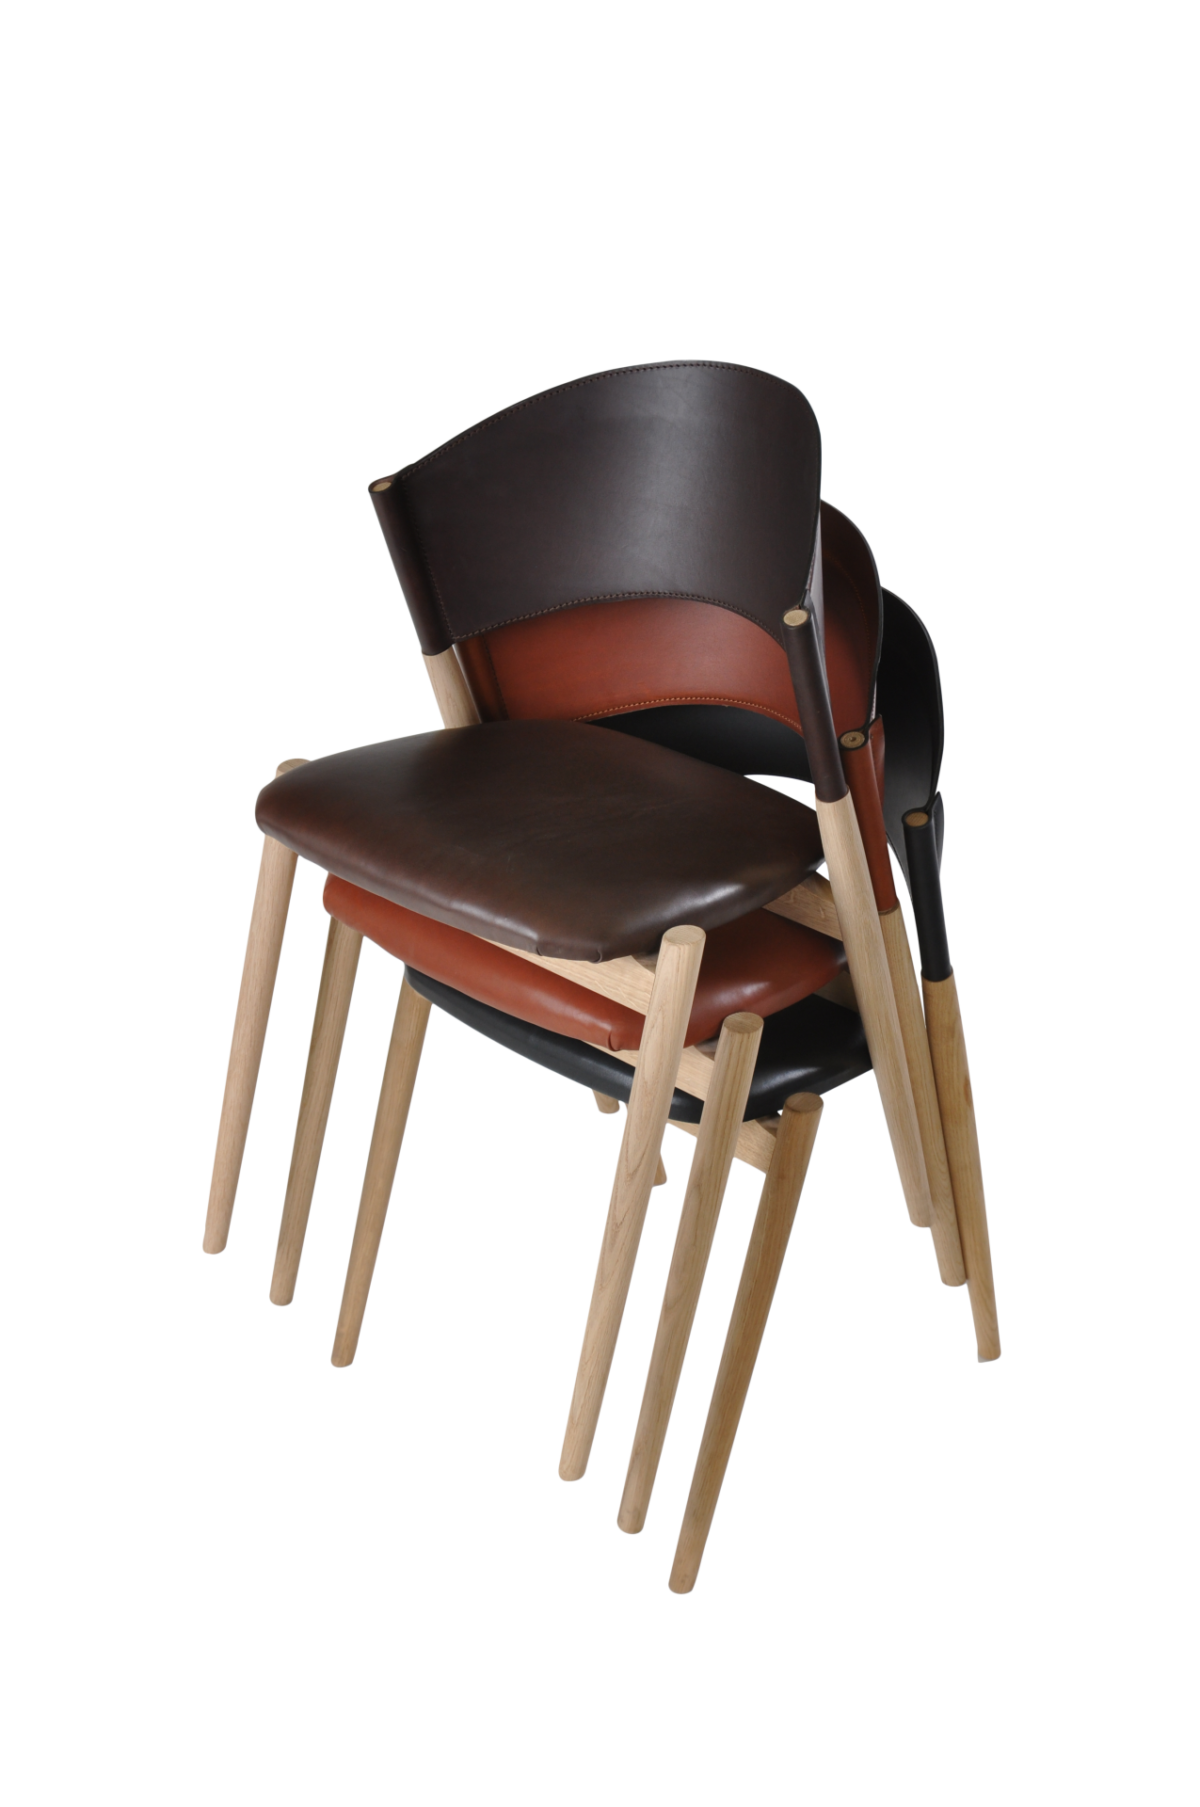 A Chair stabled